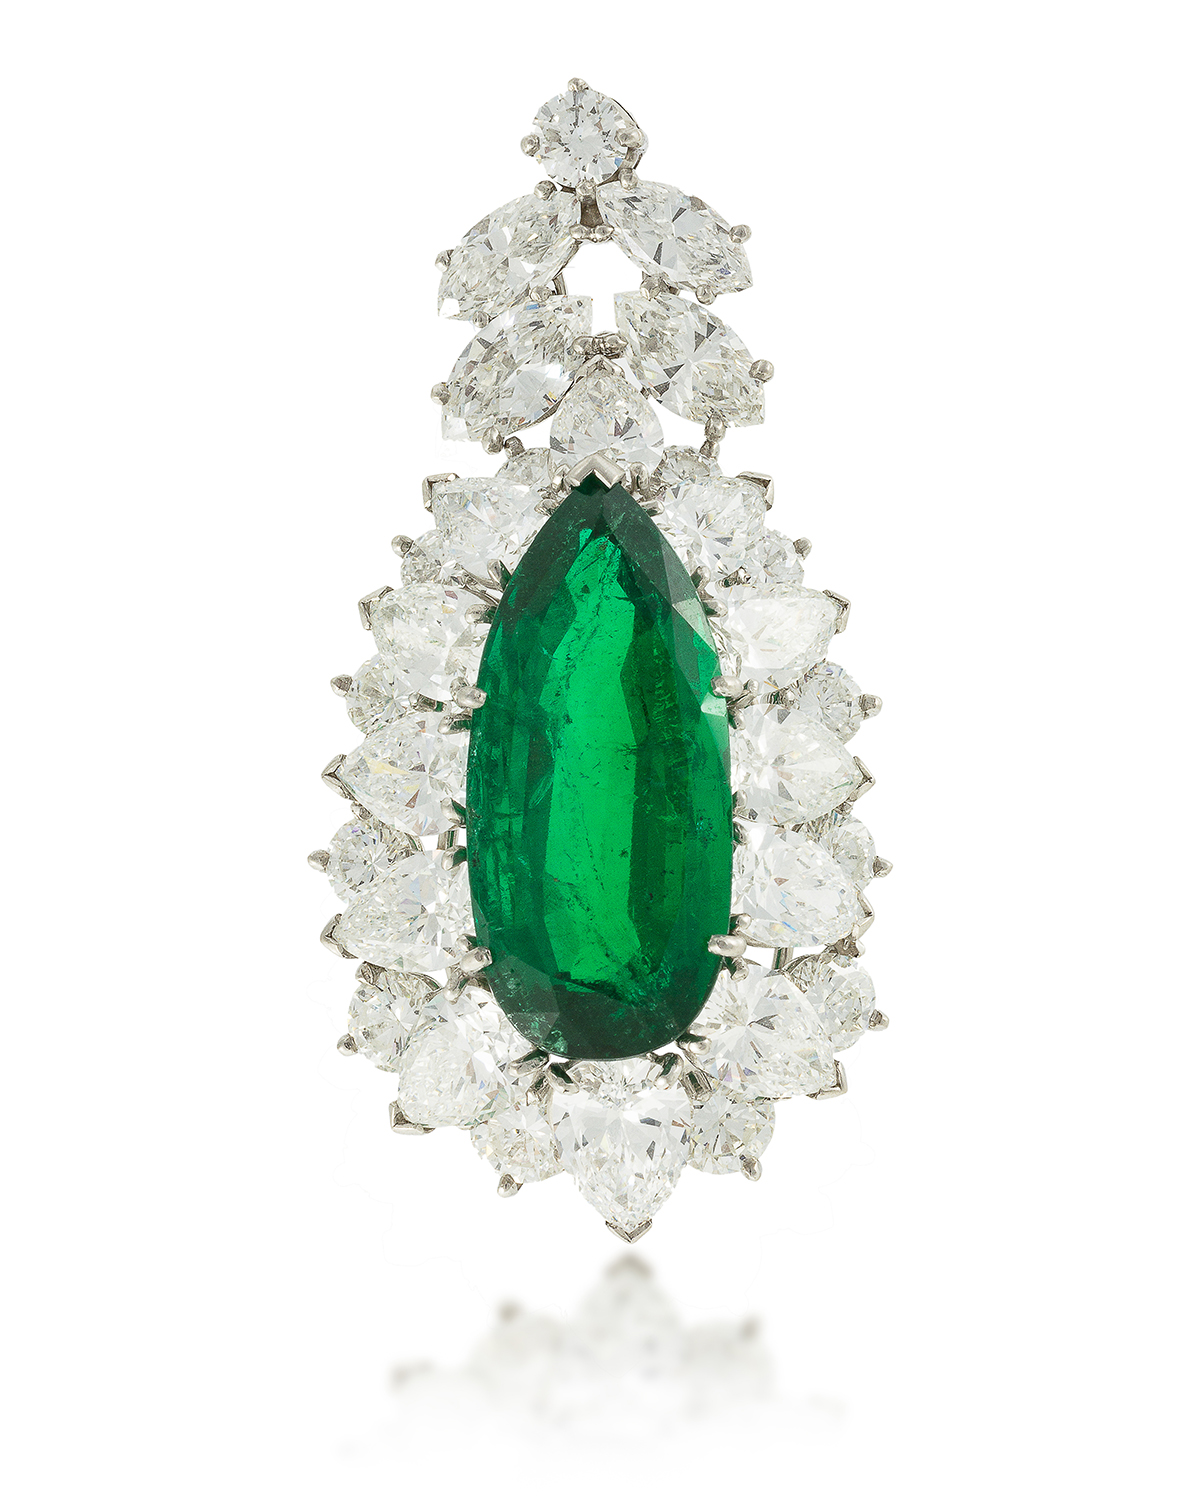 A Colombian emerald and diamond pendant